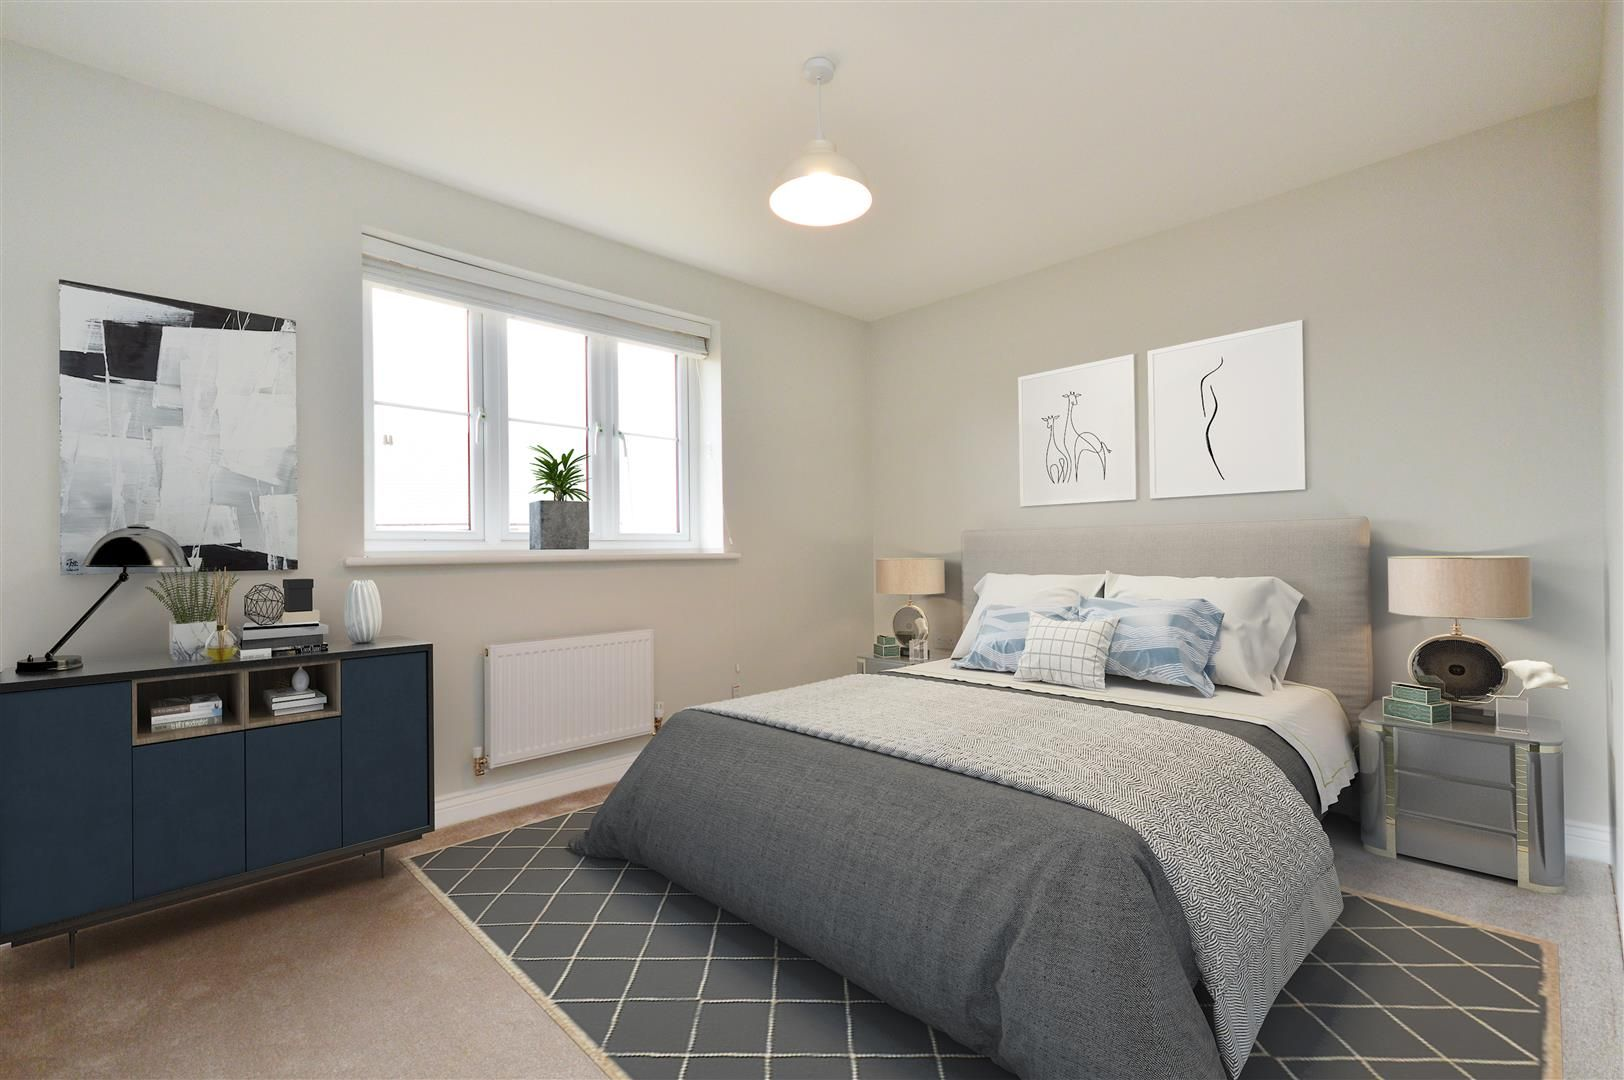 2 bed semi-detached for sale in Kingstone  - Property Image 5